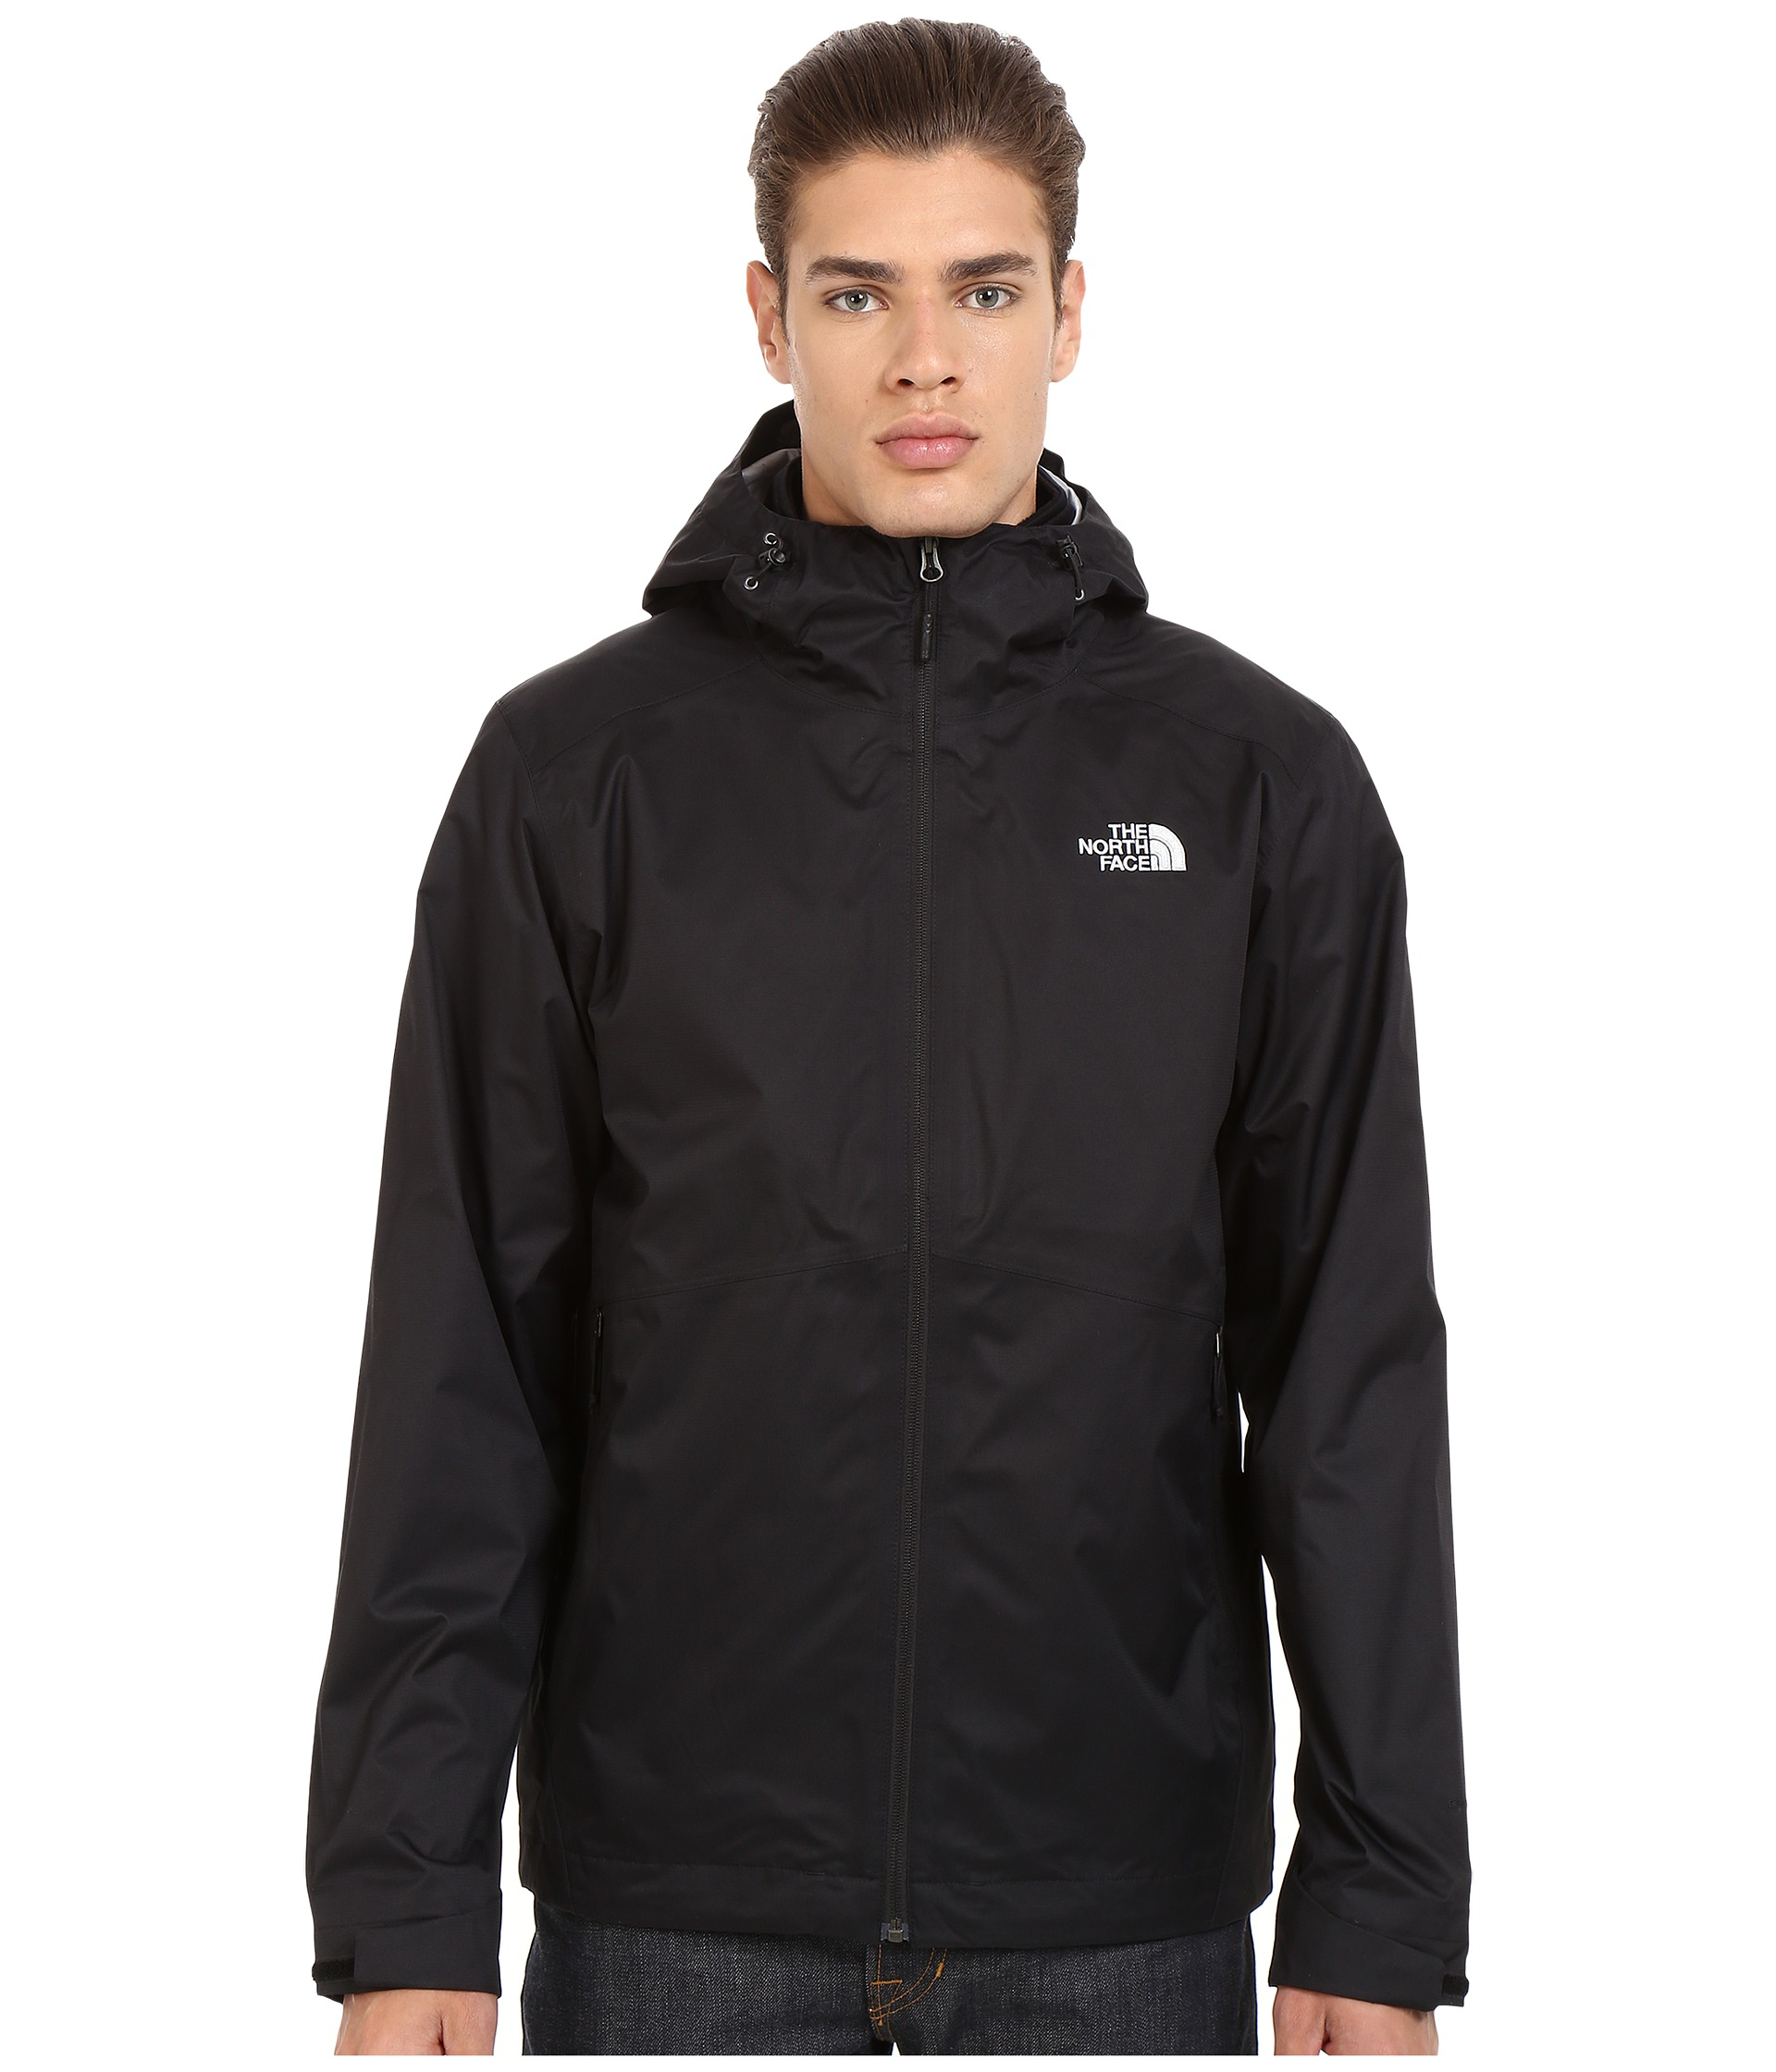 1f4bfef10707 the north face men s arrowood triclimate jacket - Marwood ...